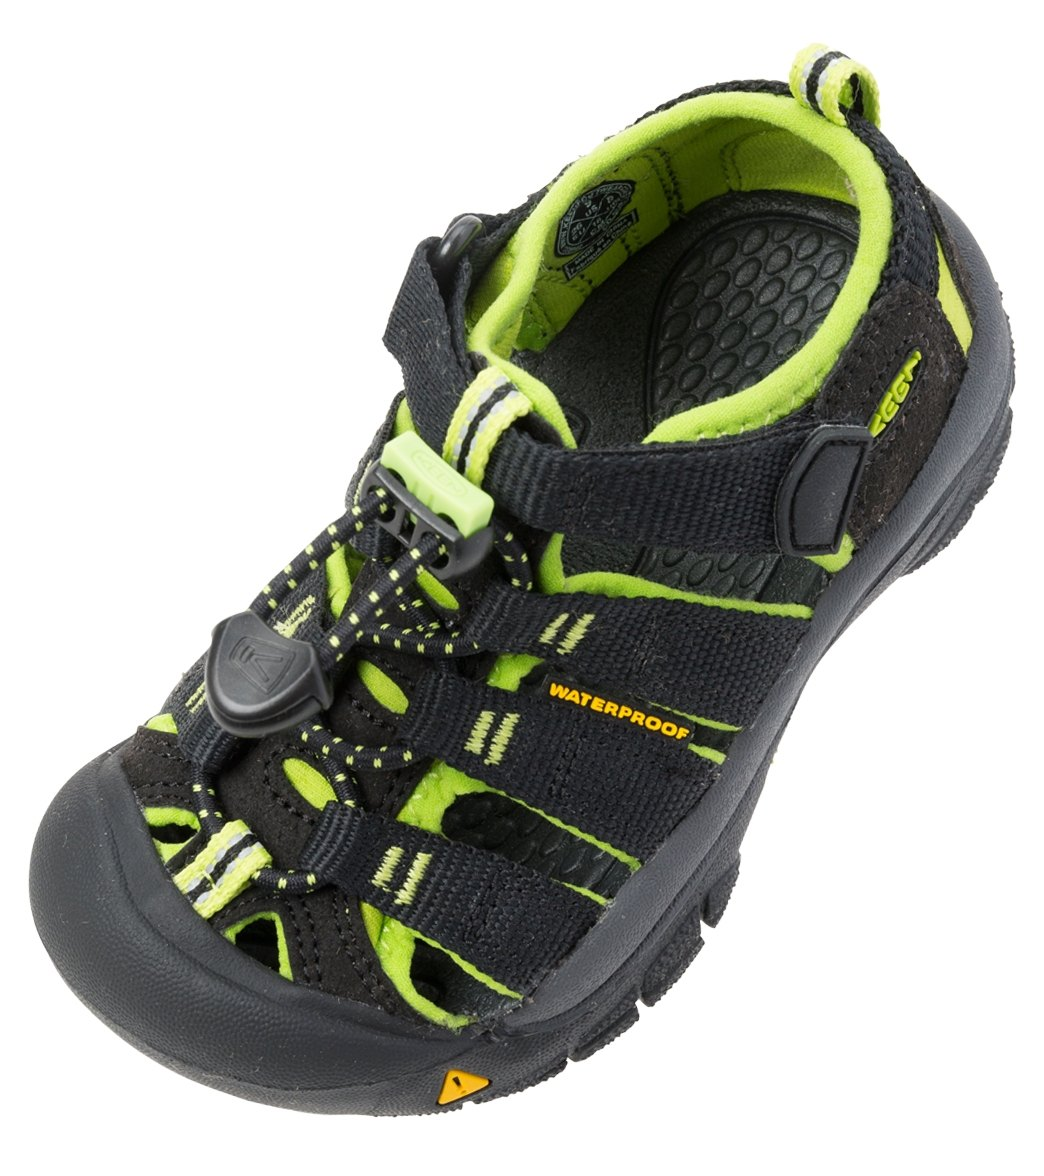 4322f24f3a5a Keen Children s Newport H2 Water Shoes at SwimOutlet.com - Free Shipping